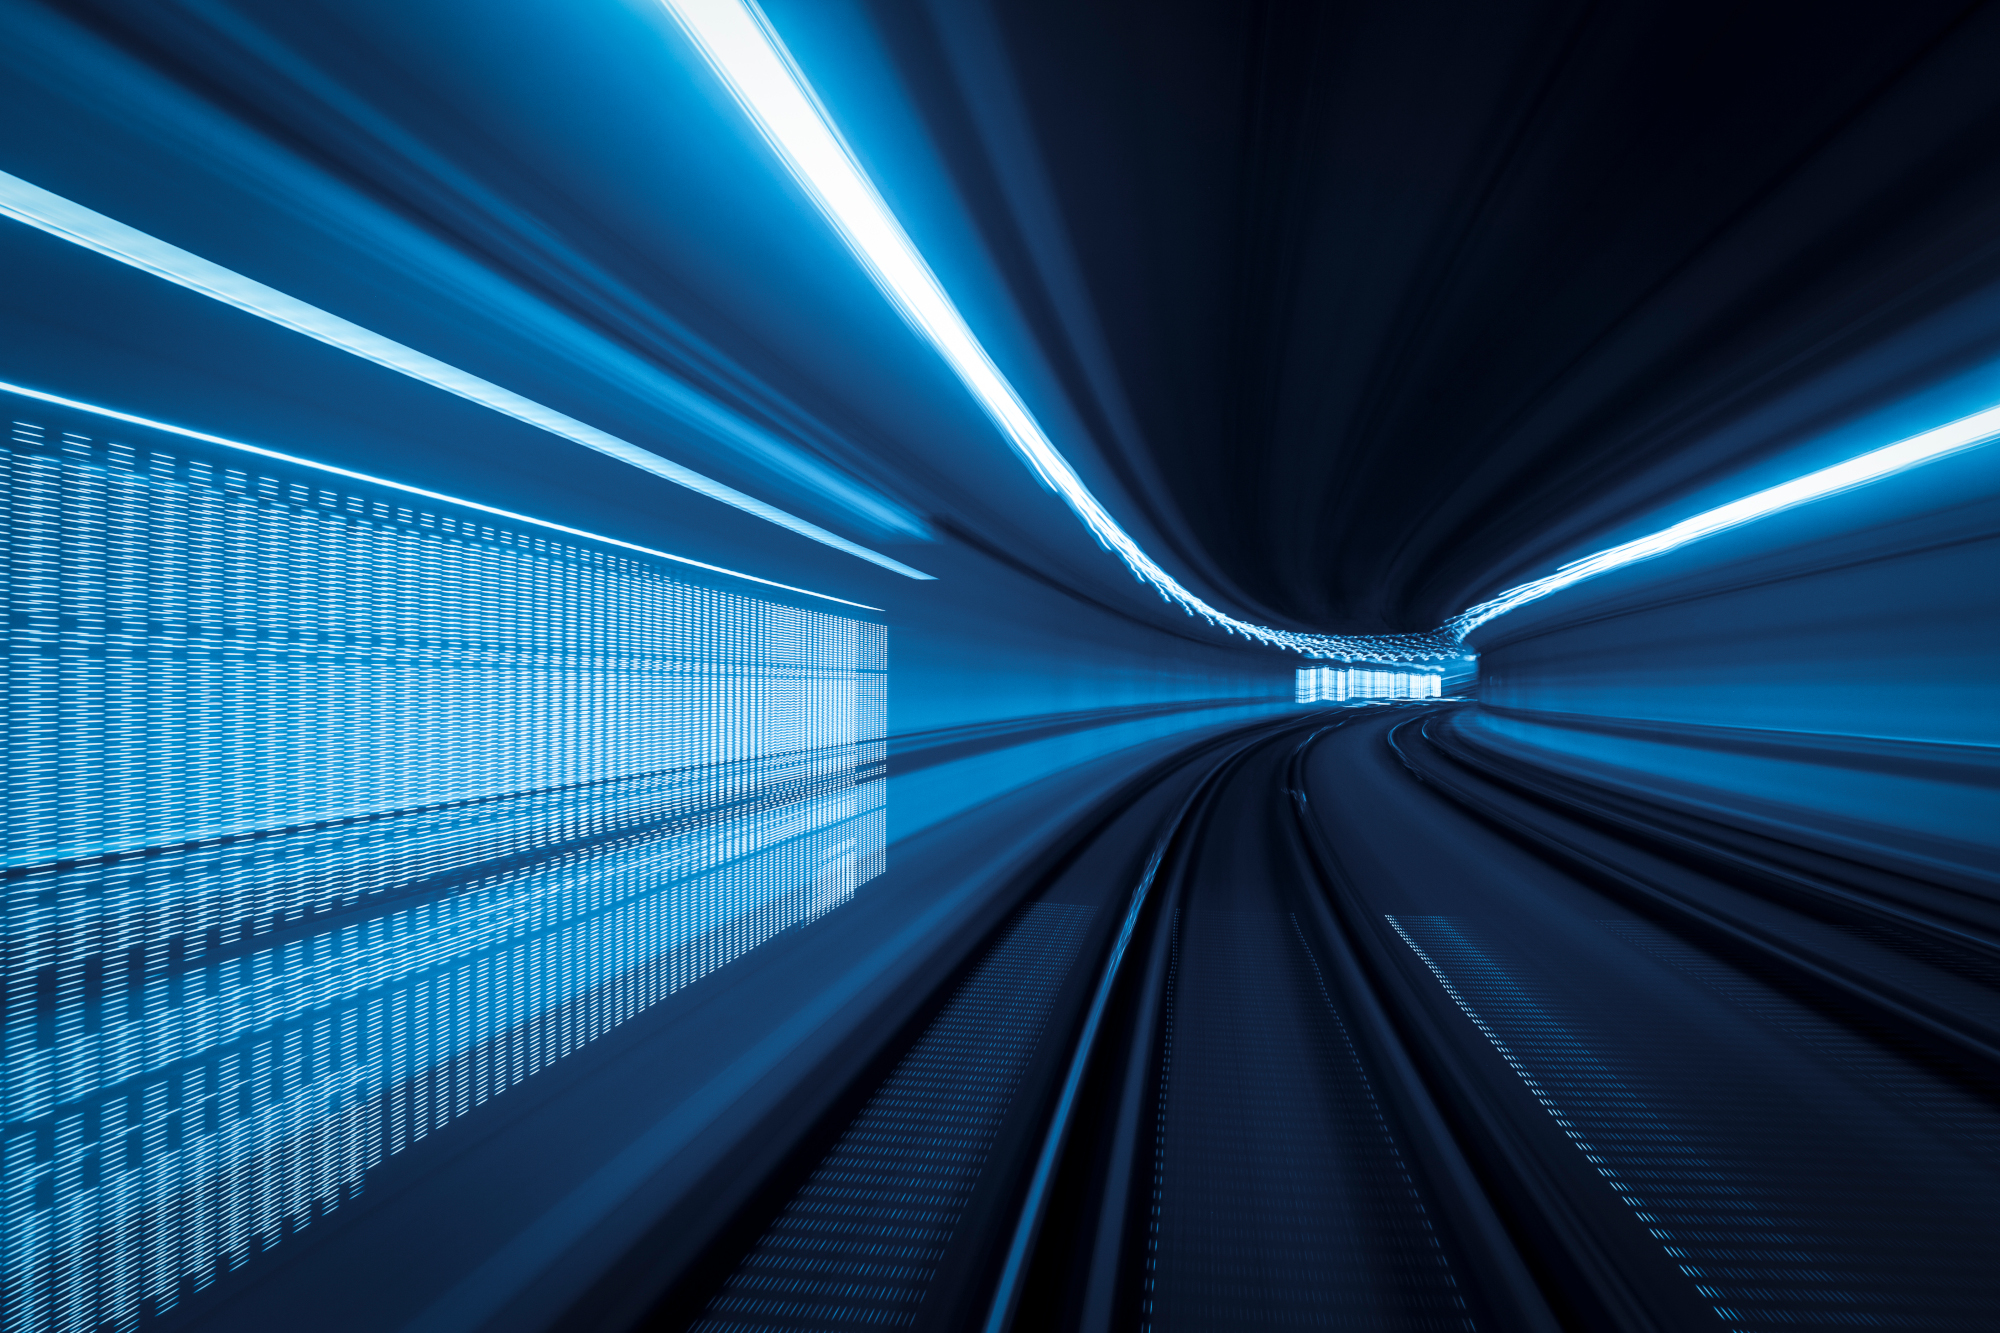 hyperTunnel boosts engineering team with new project management and seismic imaging experts